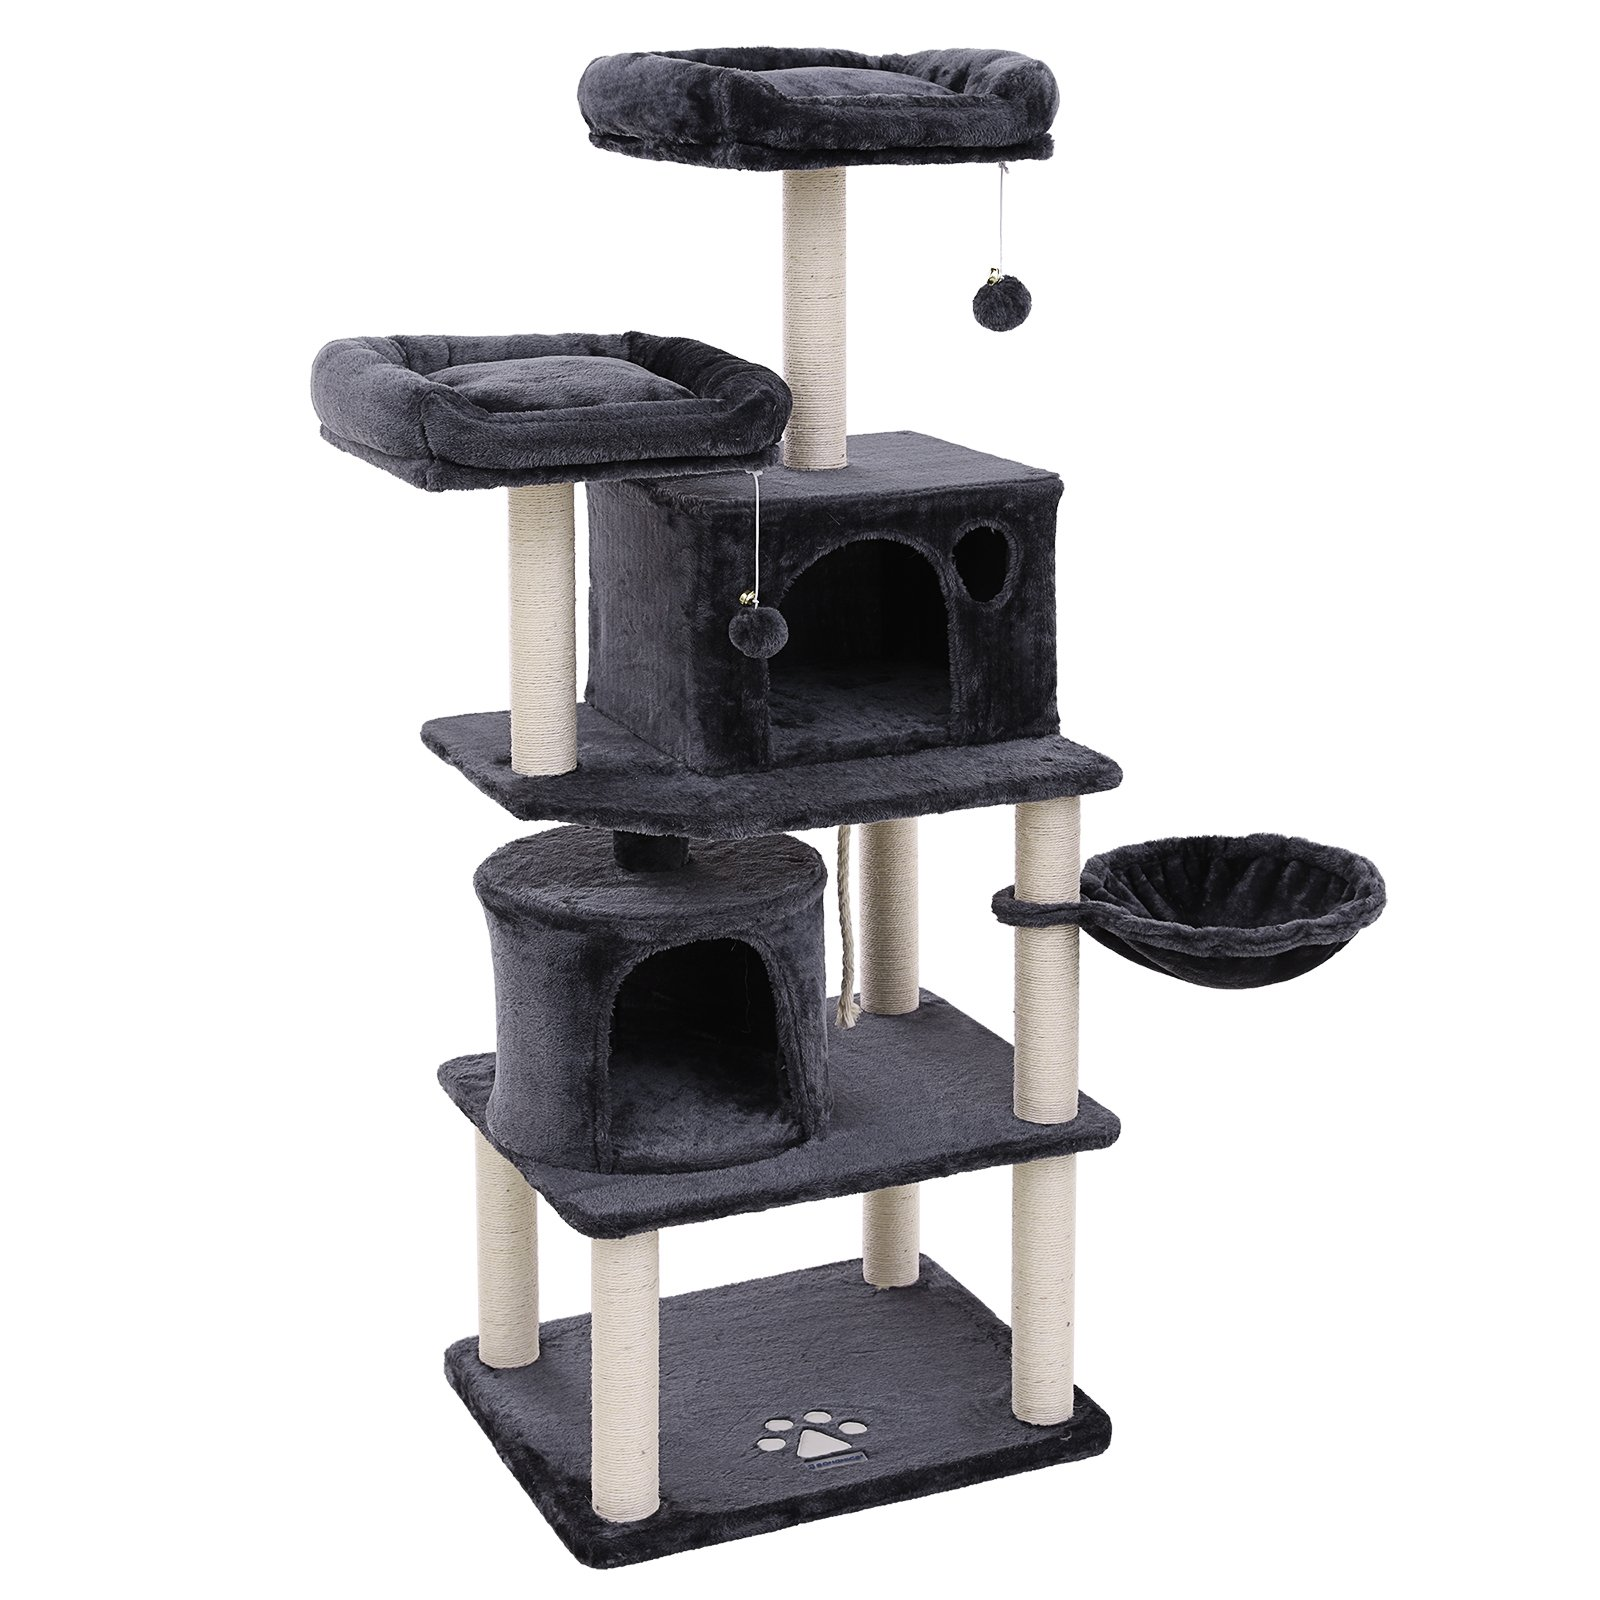 SONGMICS Multi-Level 60'' Cat Tree with Sisal-Covered Scratching Posts, Plush Perches, Basket and 2 Condos, Cat Tower Furniture - for Kittens, Cats and Pets - Smoky Gray UPCT90G